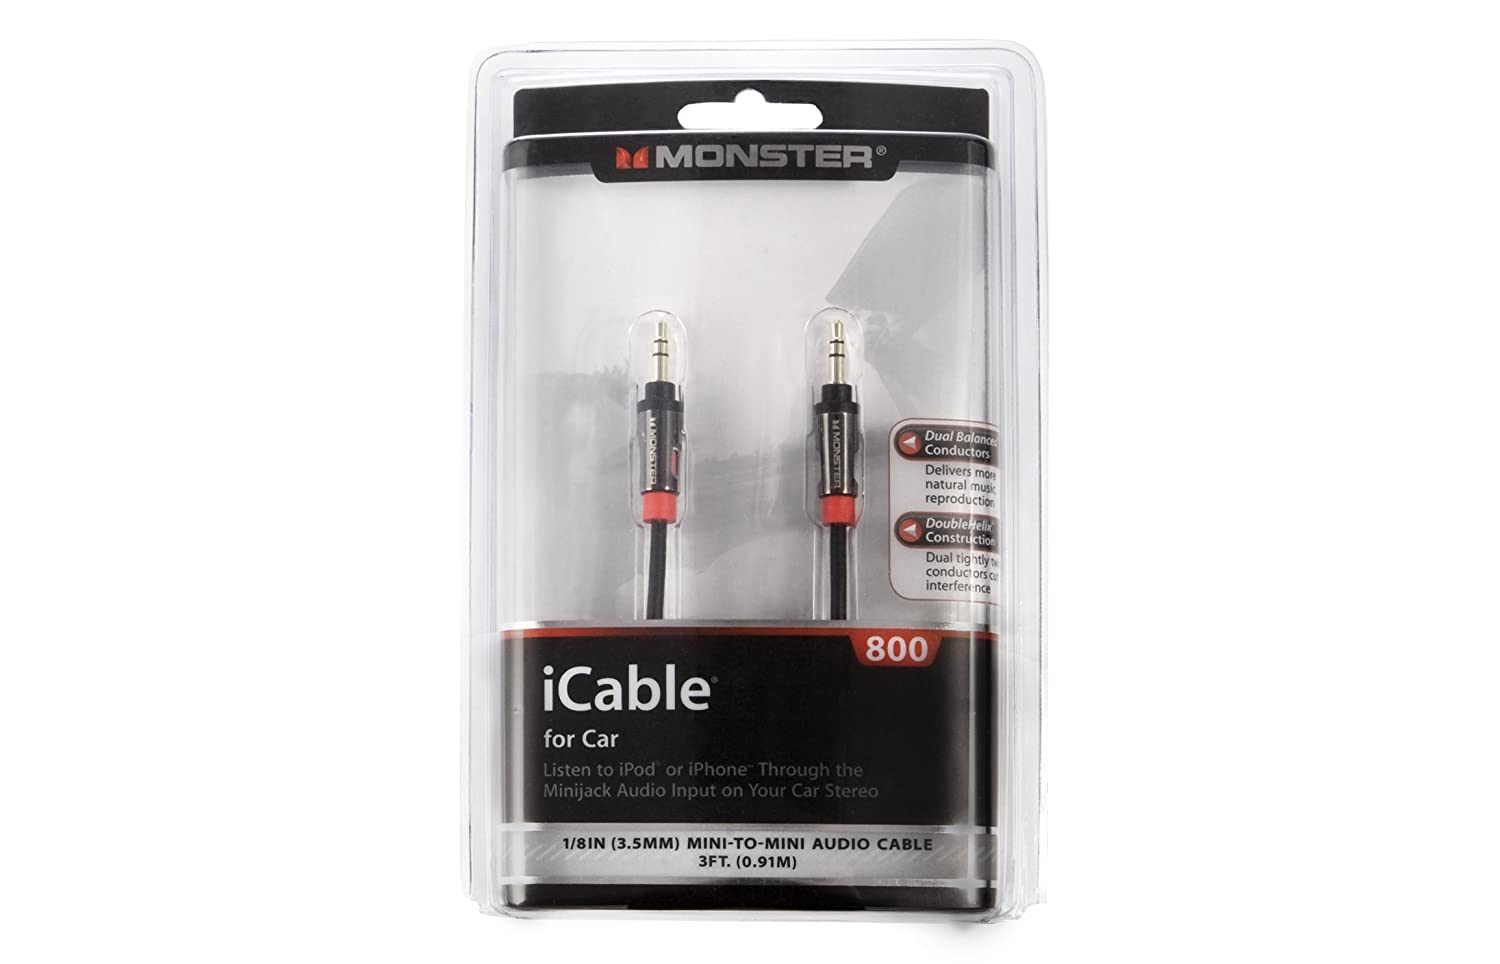 Monster Cable iCable 800 0.91m 3.5mm 3.5mm Negro Cable de Audio: Amazon.es: Electrónica